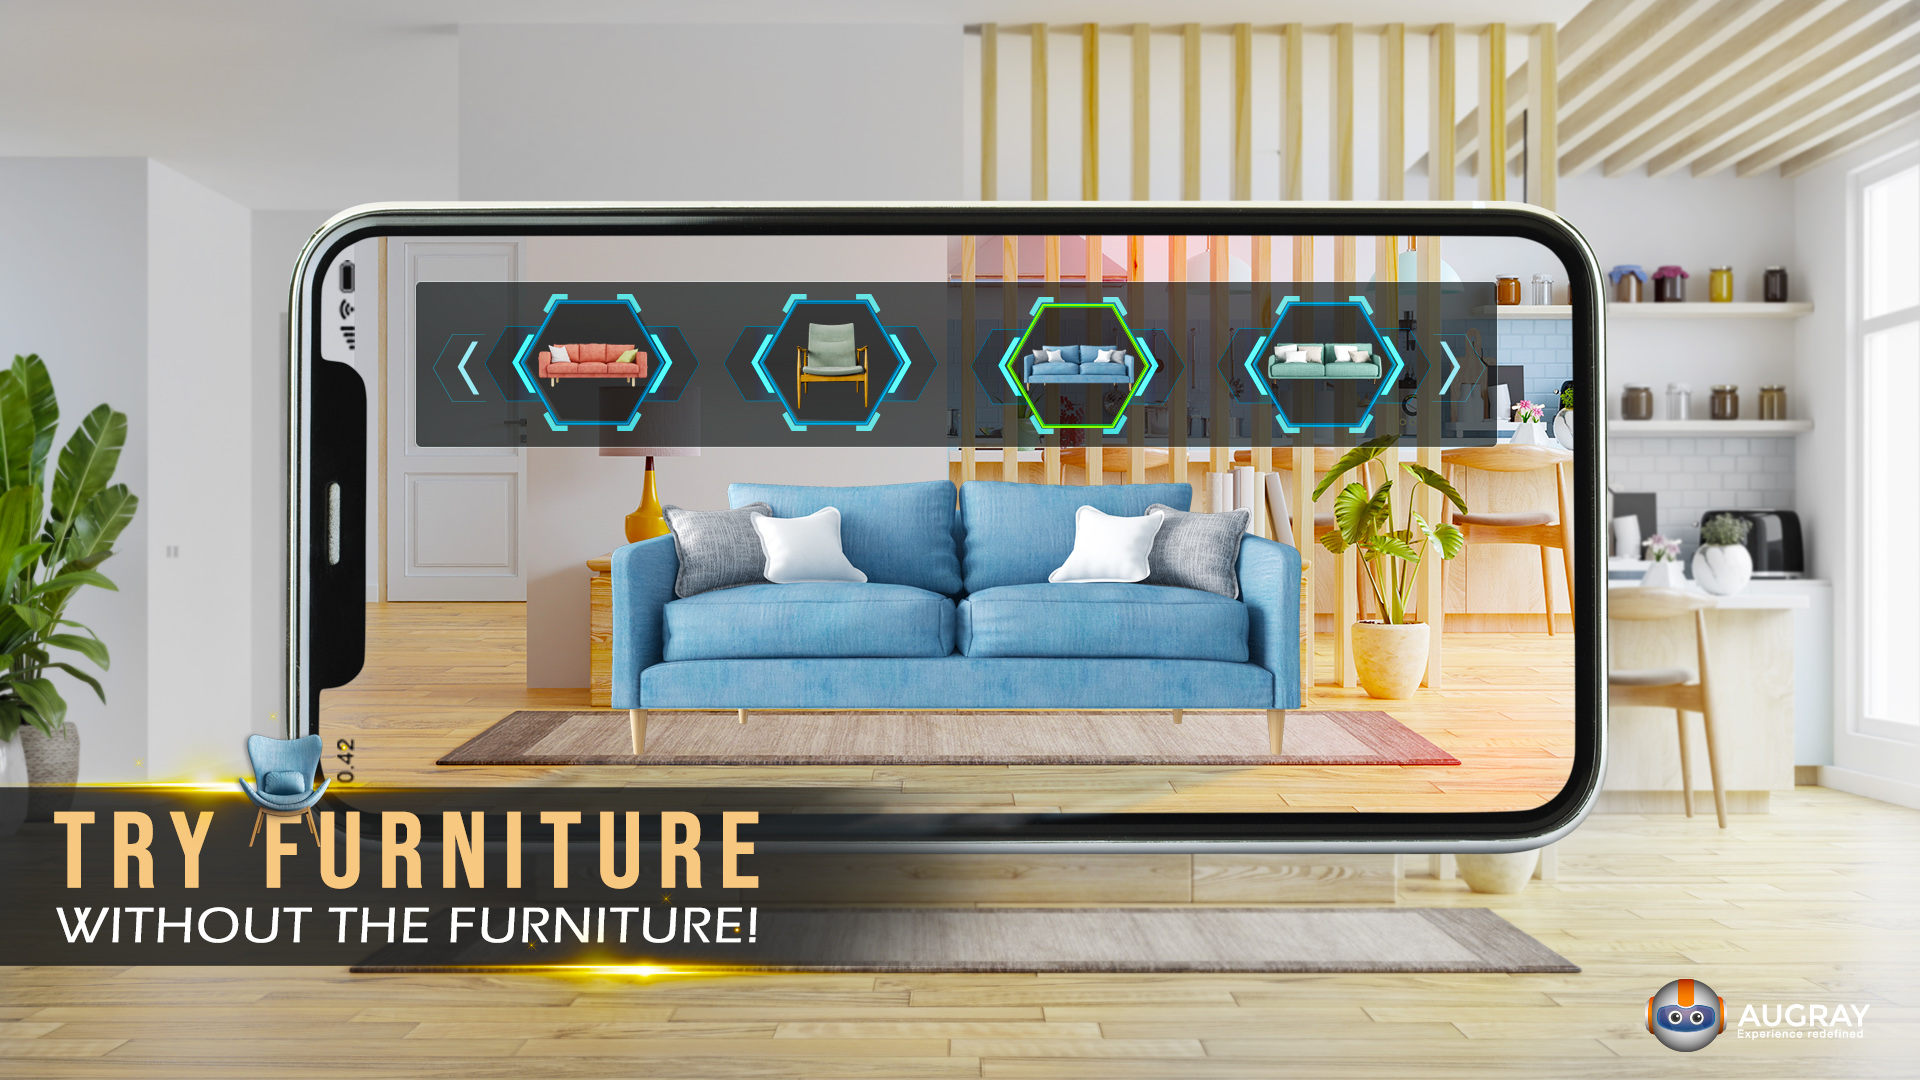 Web AR: Try Furniture, without the Furniture!